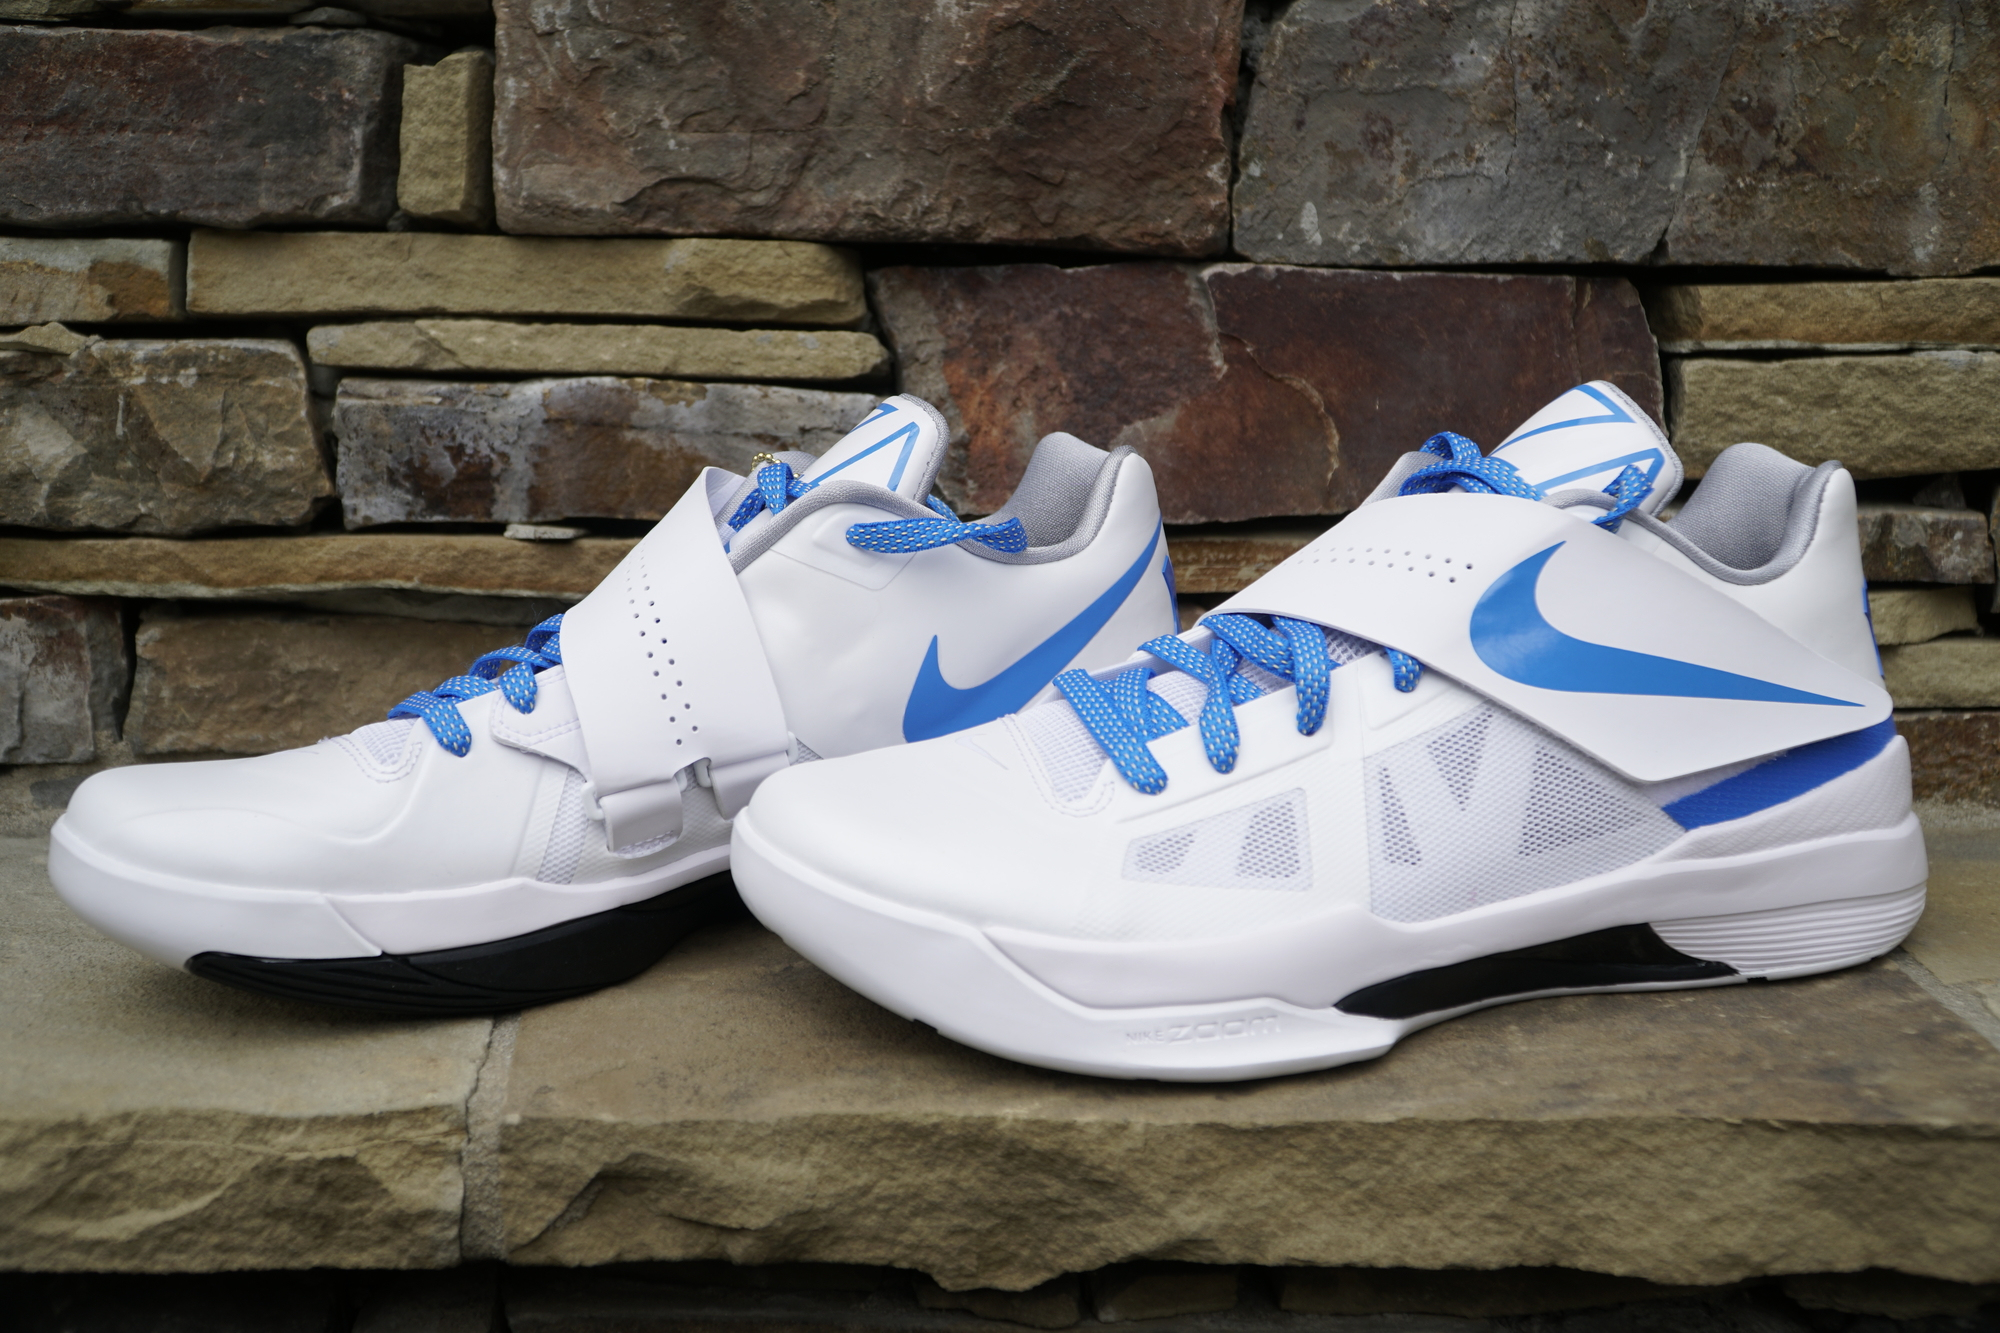 Nike KD 4 battle tested kevin durant 4